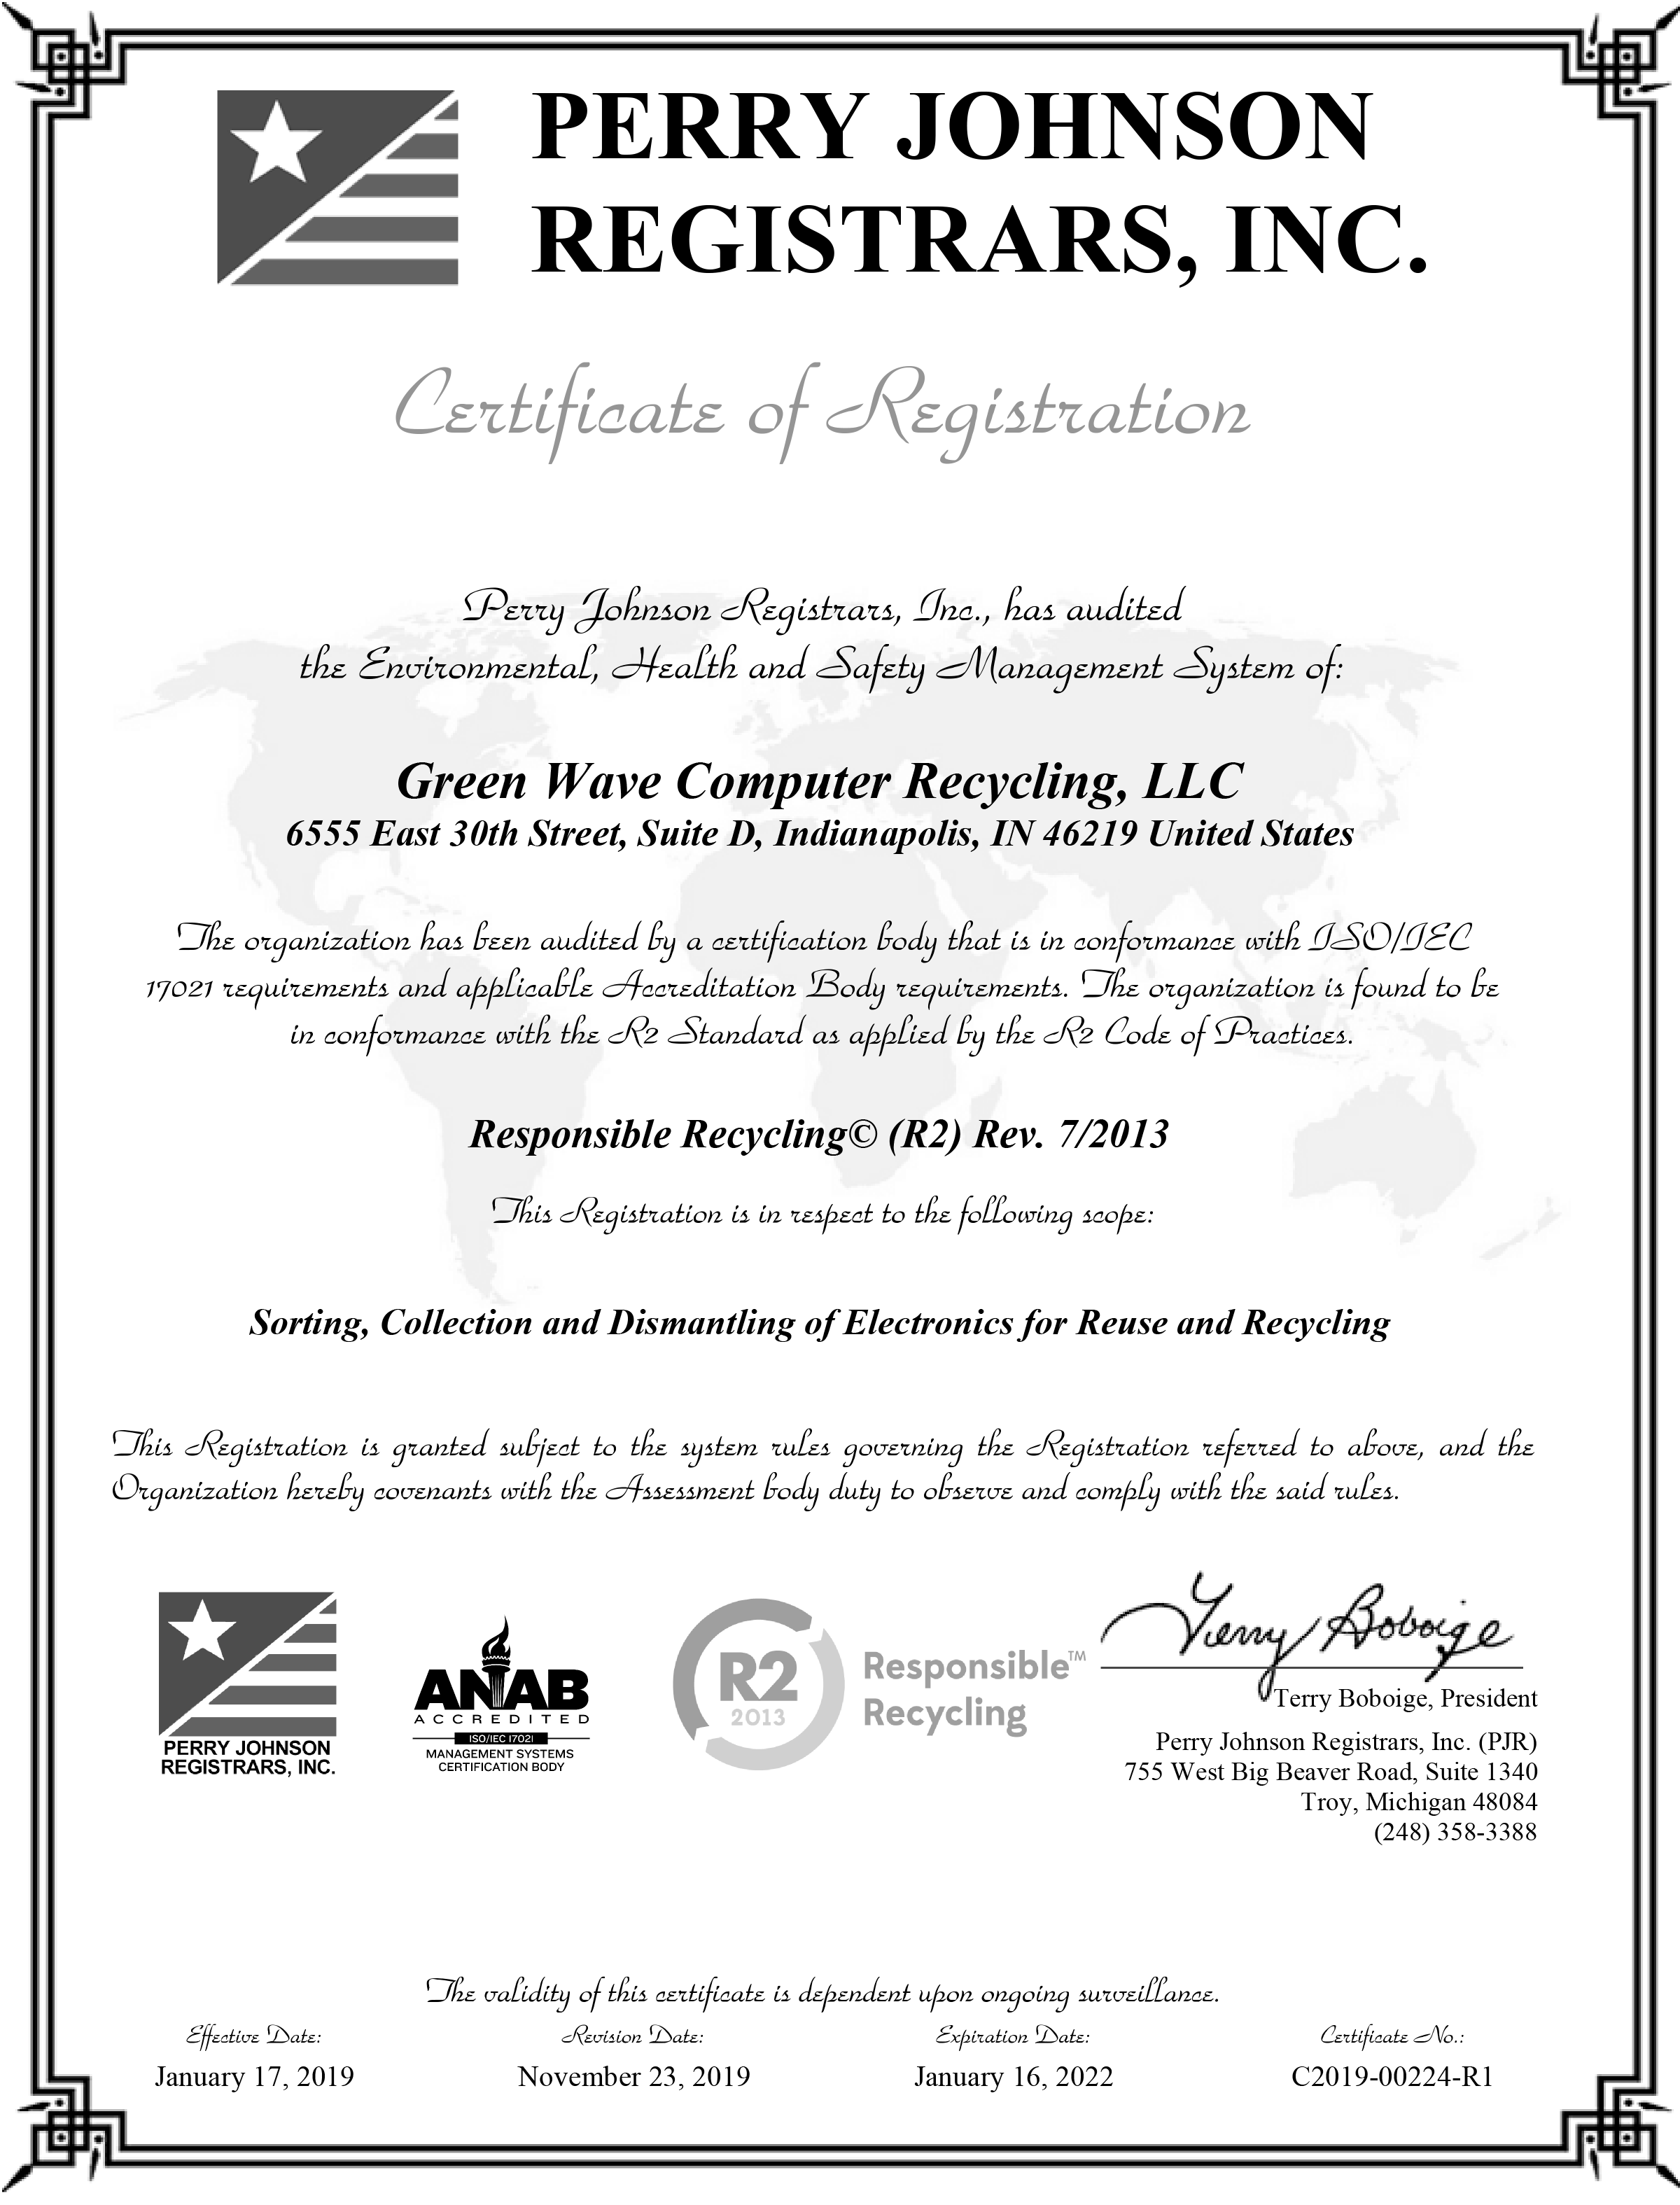 Green Wave Computer Recycling R2 Certification